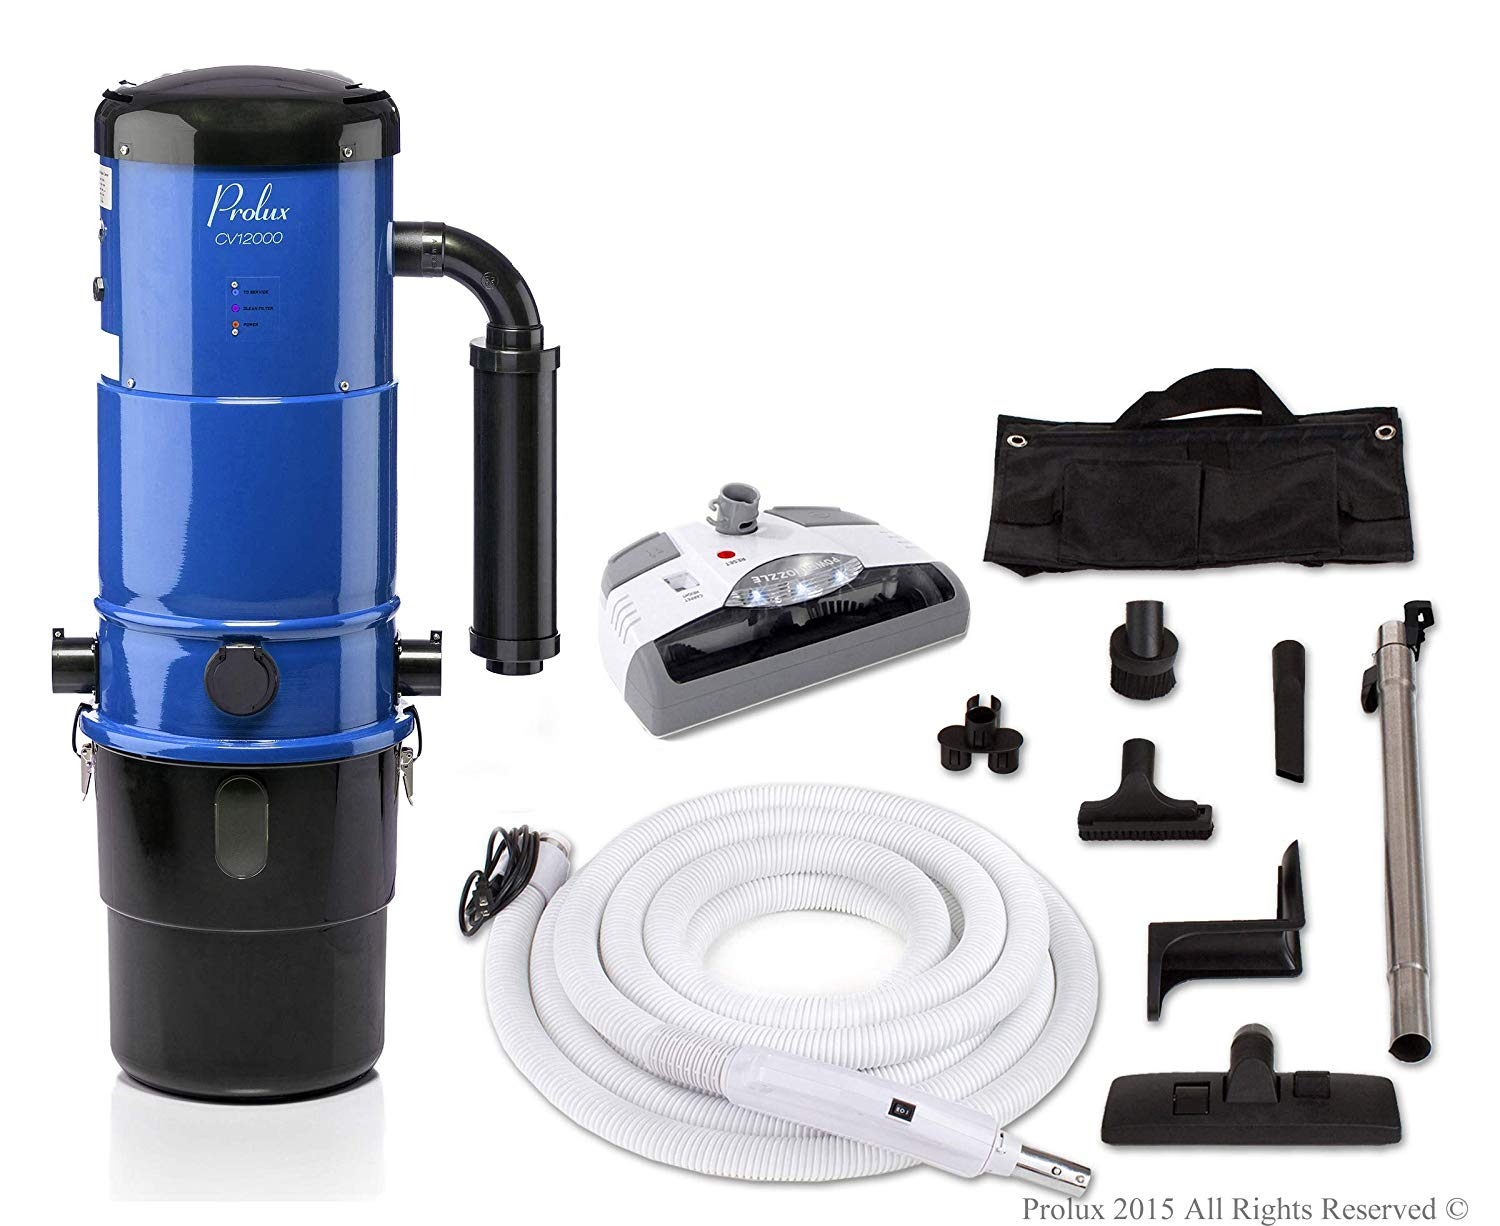 Prolux CV12000 Central Vacuum Unit System with Electric Hose Power Nozzle Kit and 25 Year Warranty …